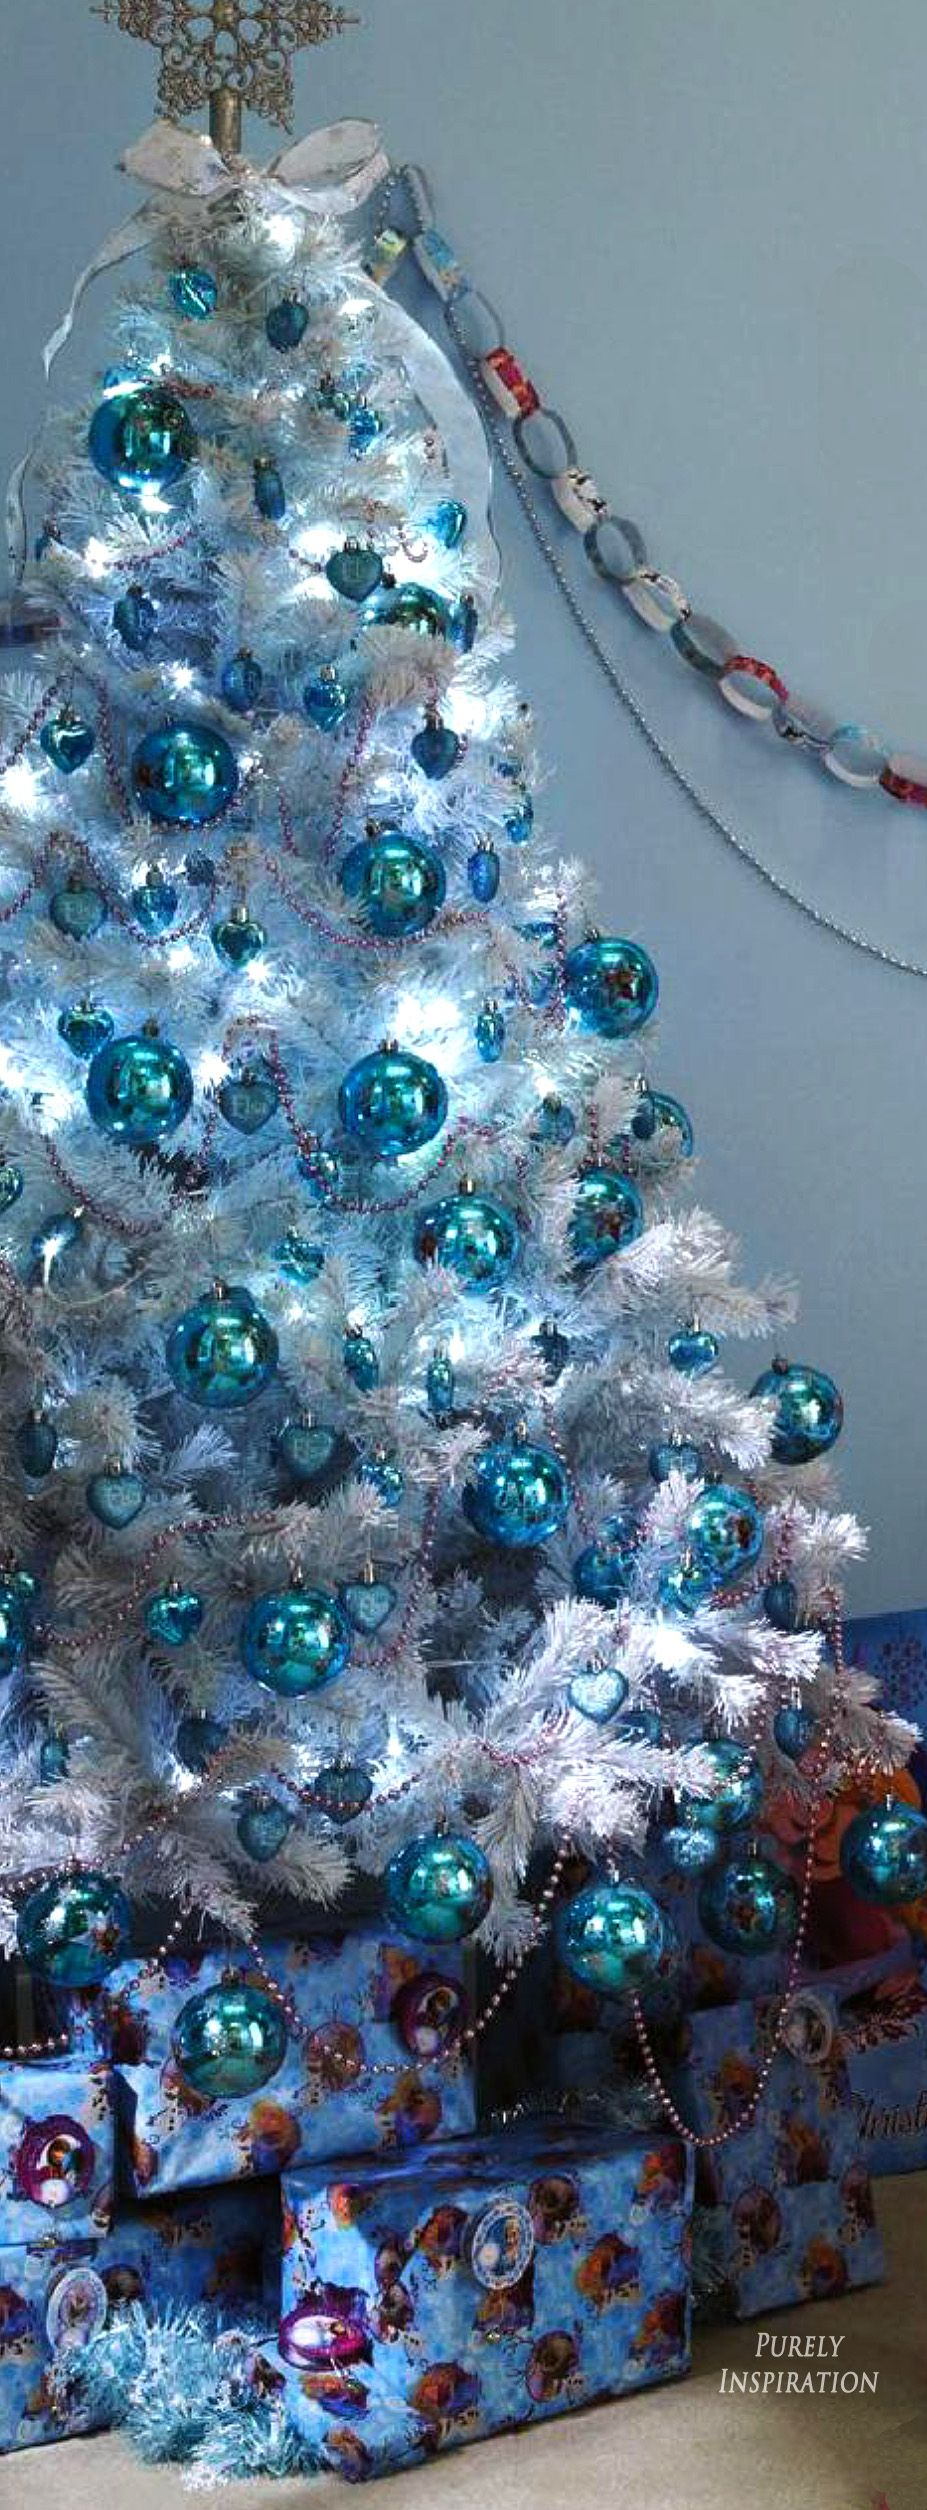 Christmas Is Coming - Blue Christmas - Purely Inspiration